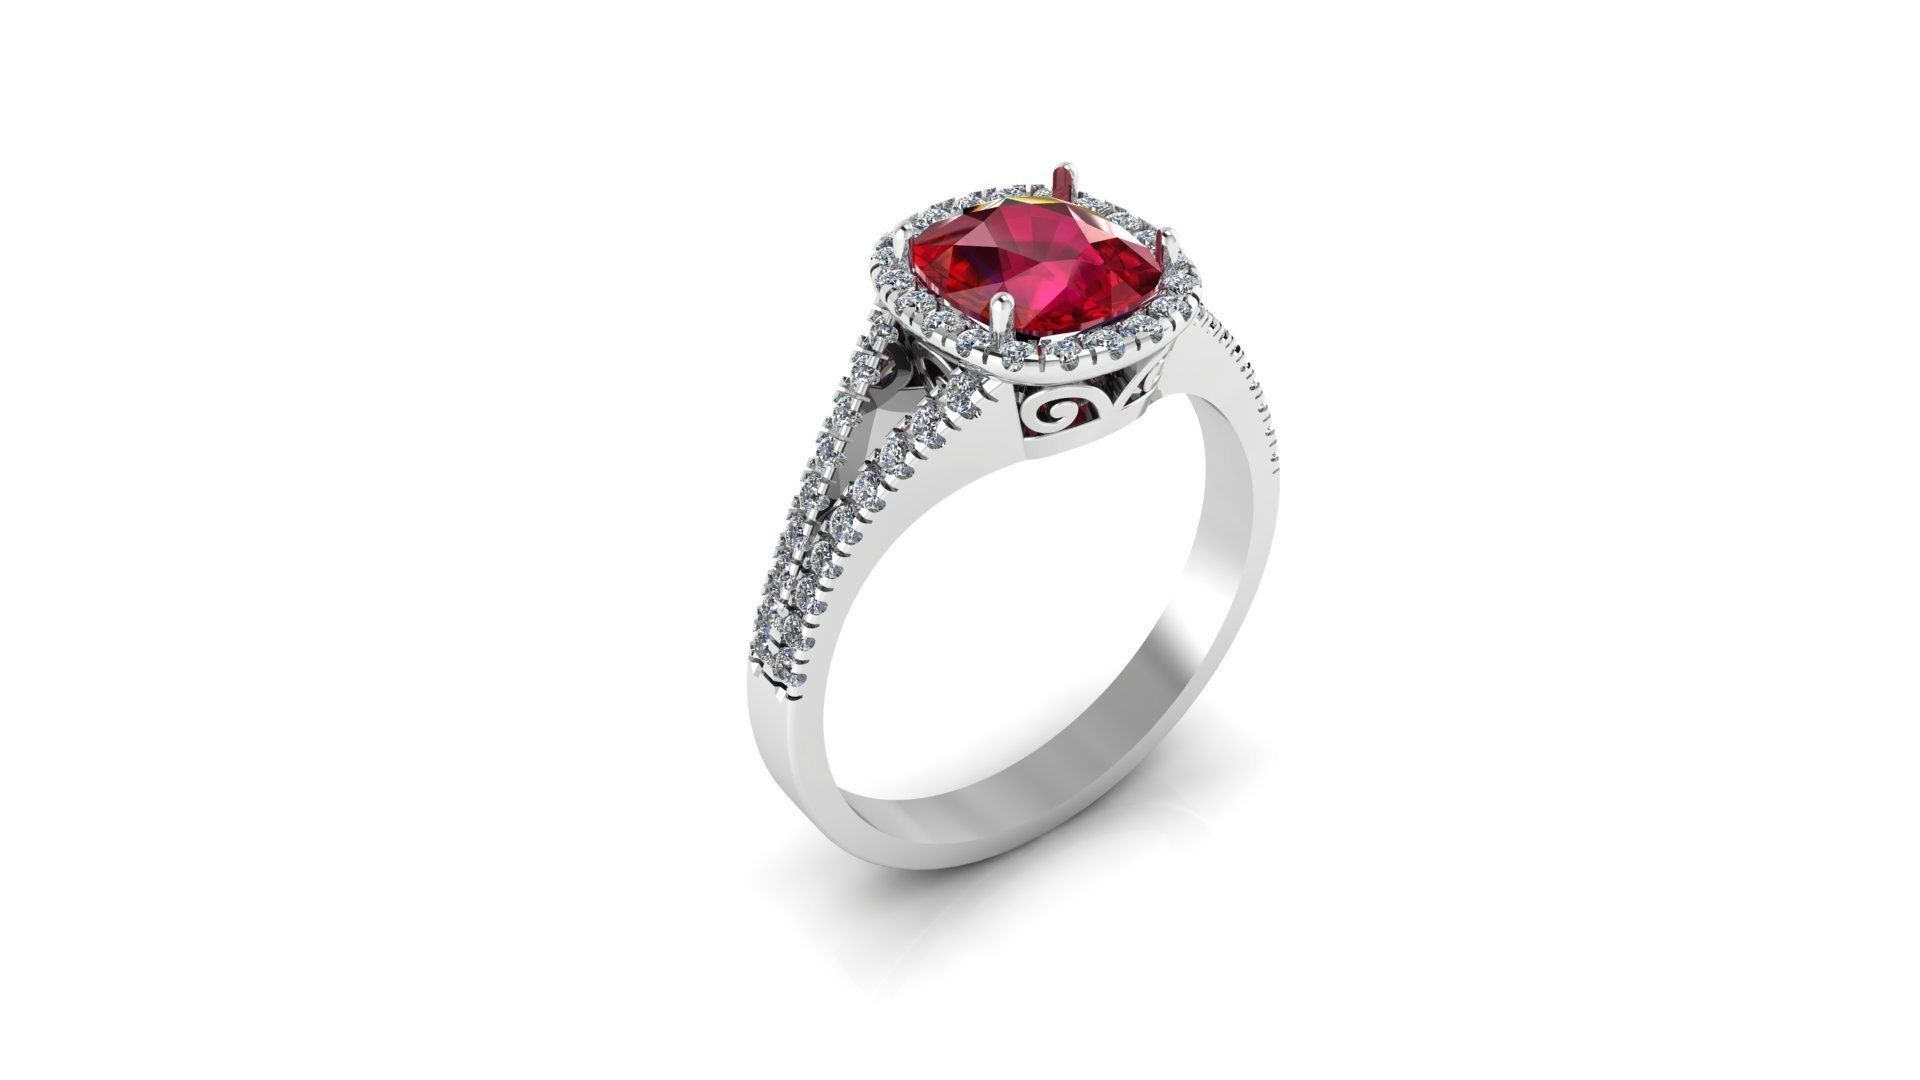 Cushion Cut Ruby Ring With Diamonds | 3D Print Model Pertaining To Cushion Cut Ruby Rings (Gallery 8 of 25)